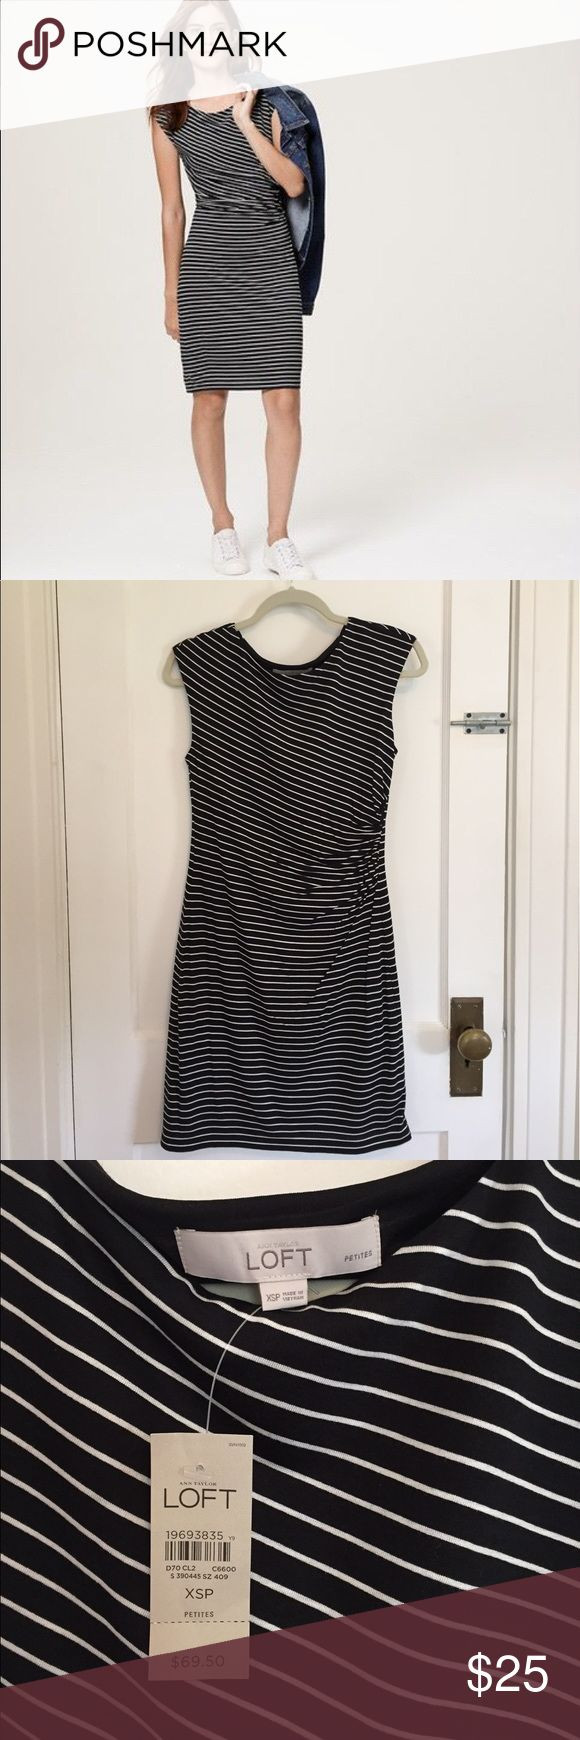 LOFT Striped Dress XSP New With Tags! LOFT black and white striped dress with side ruching. Size XS Petite. Shell is 70% Rayon, 30% Tencel Lyocell. Lining is 100% Polyester. Never worn. LOFT Dresses